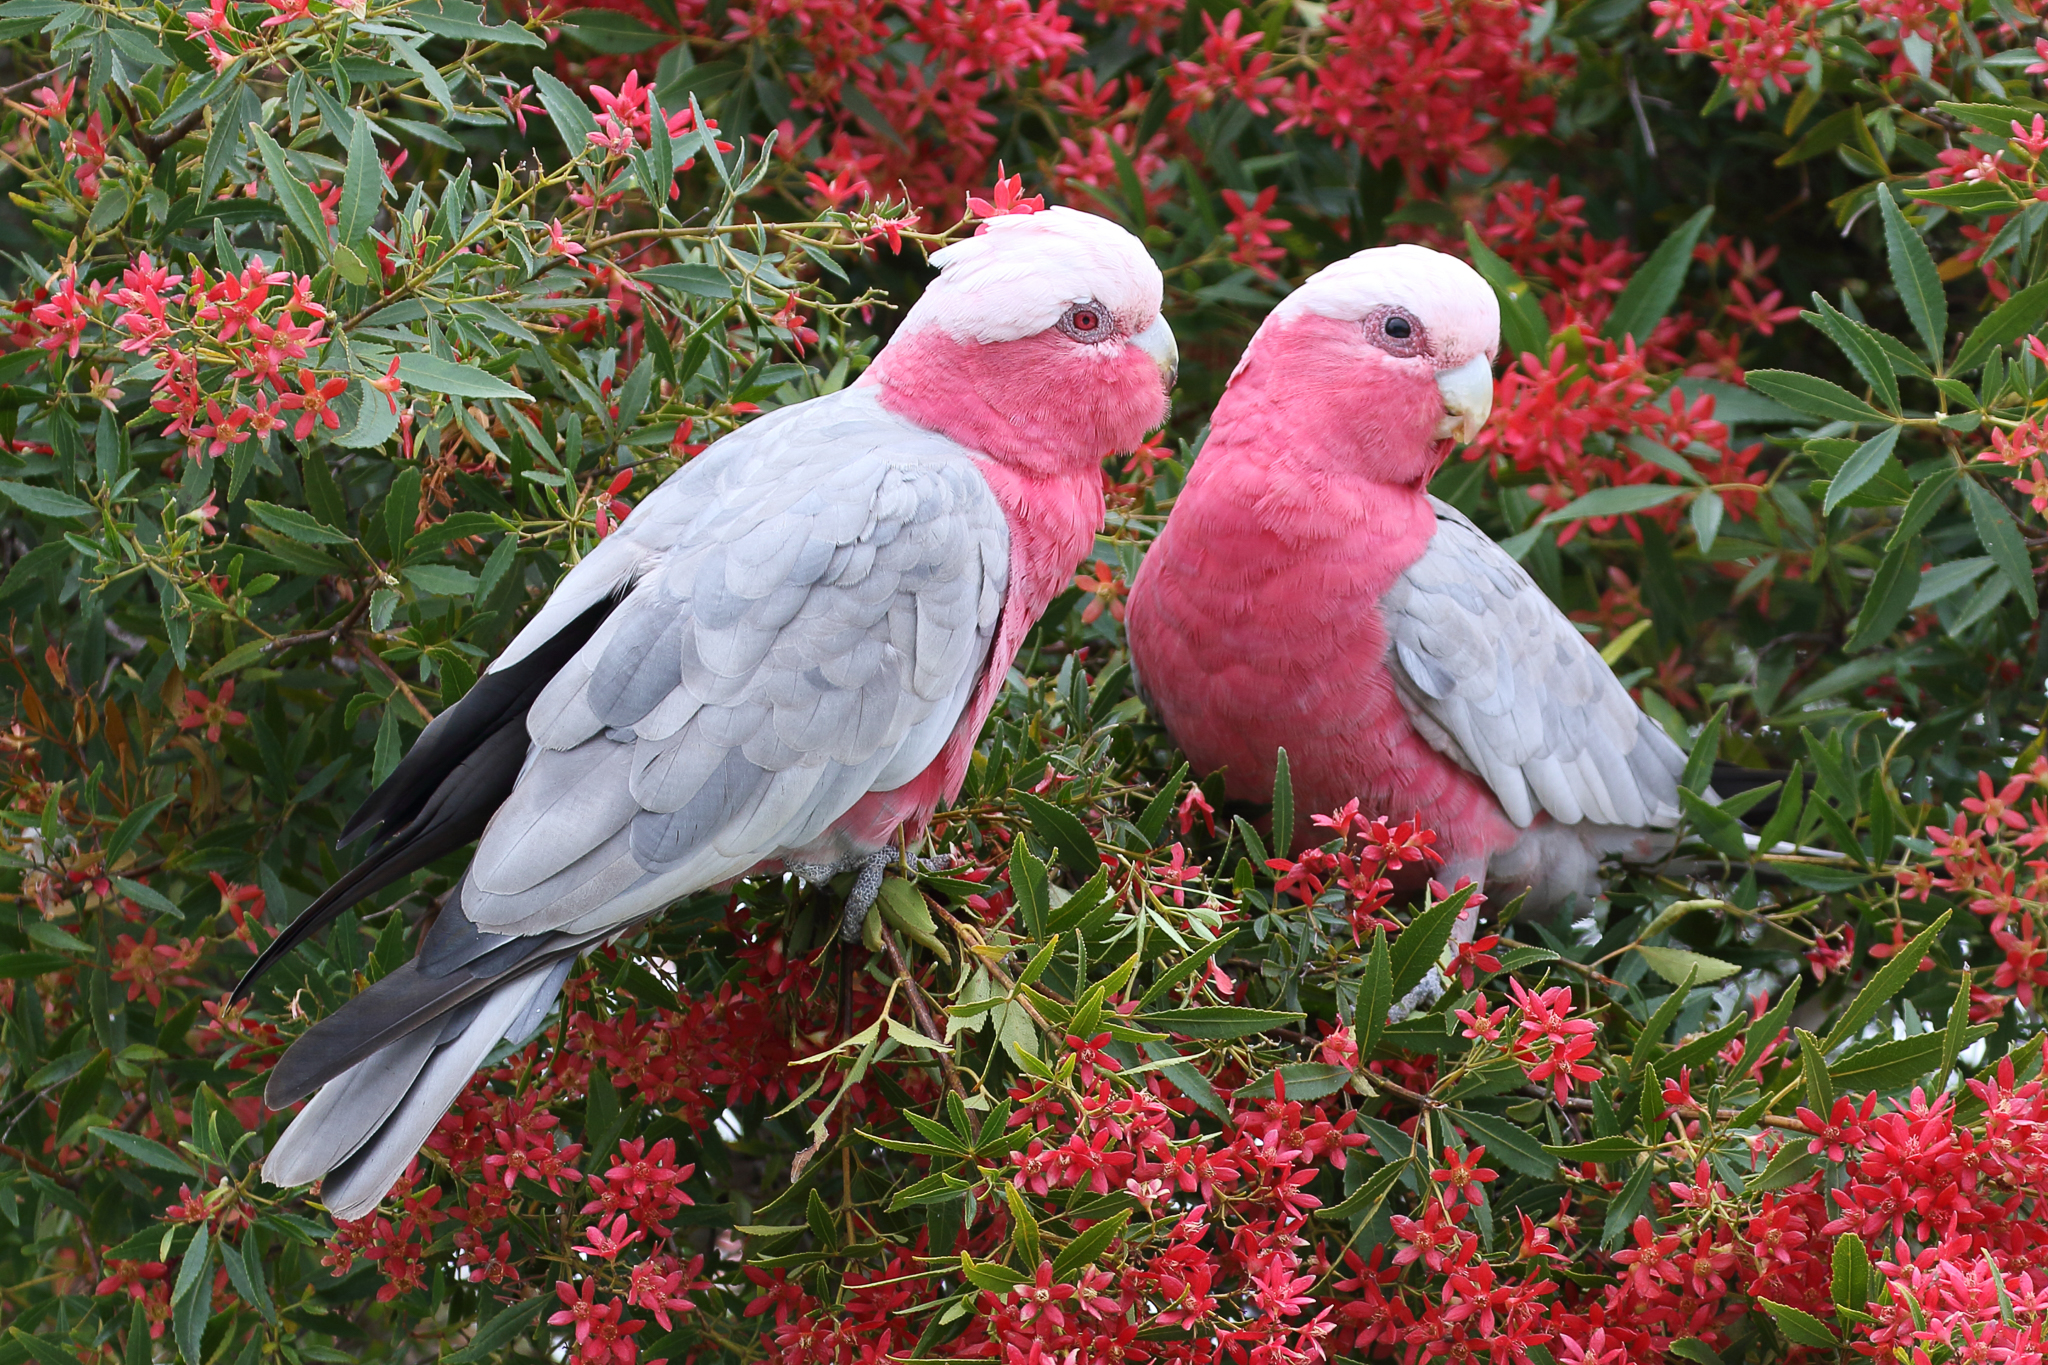 Galahs feed on seeds, usually on the ground, but here are supplementing their diet with blossom and nectar. South Coast parrots also include Rainbow Lorikeets, Crimson Rosellas, Gang Gang, Yellow-tailed Black Cockatoos, and Glossy Black Cockatoos.